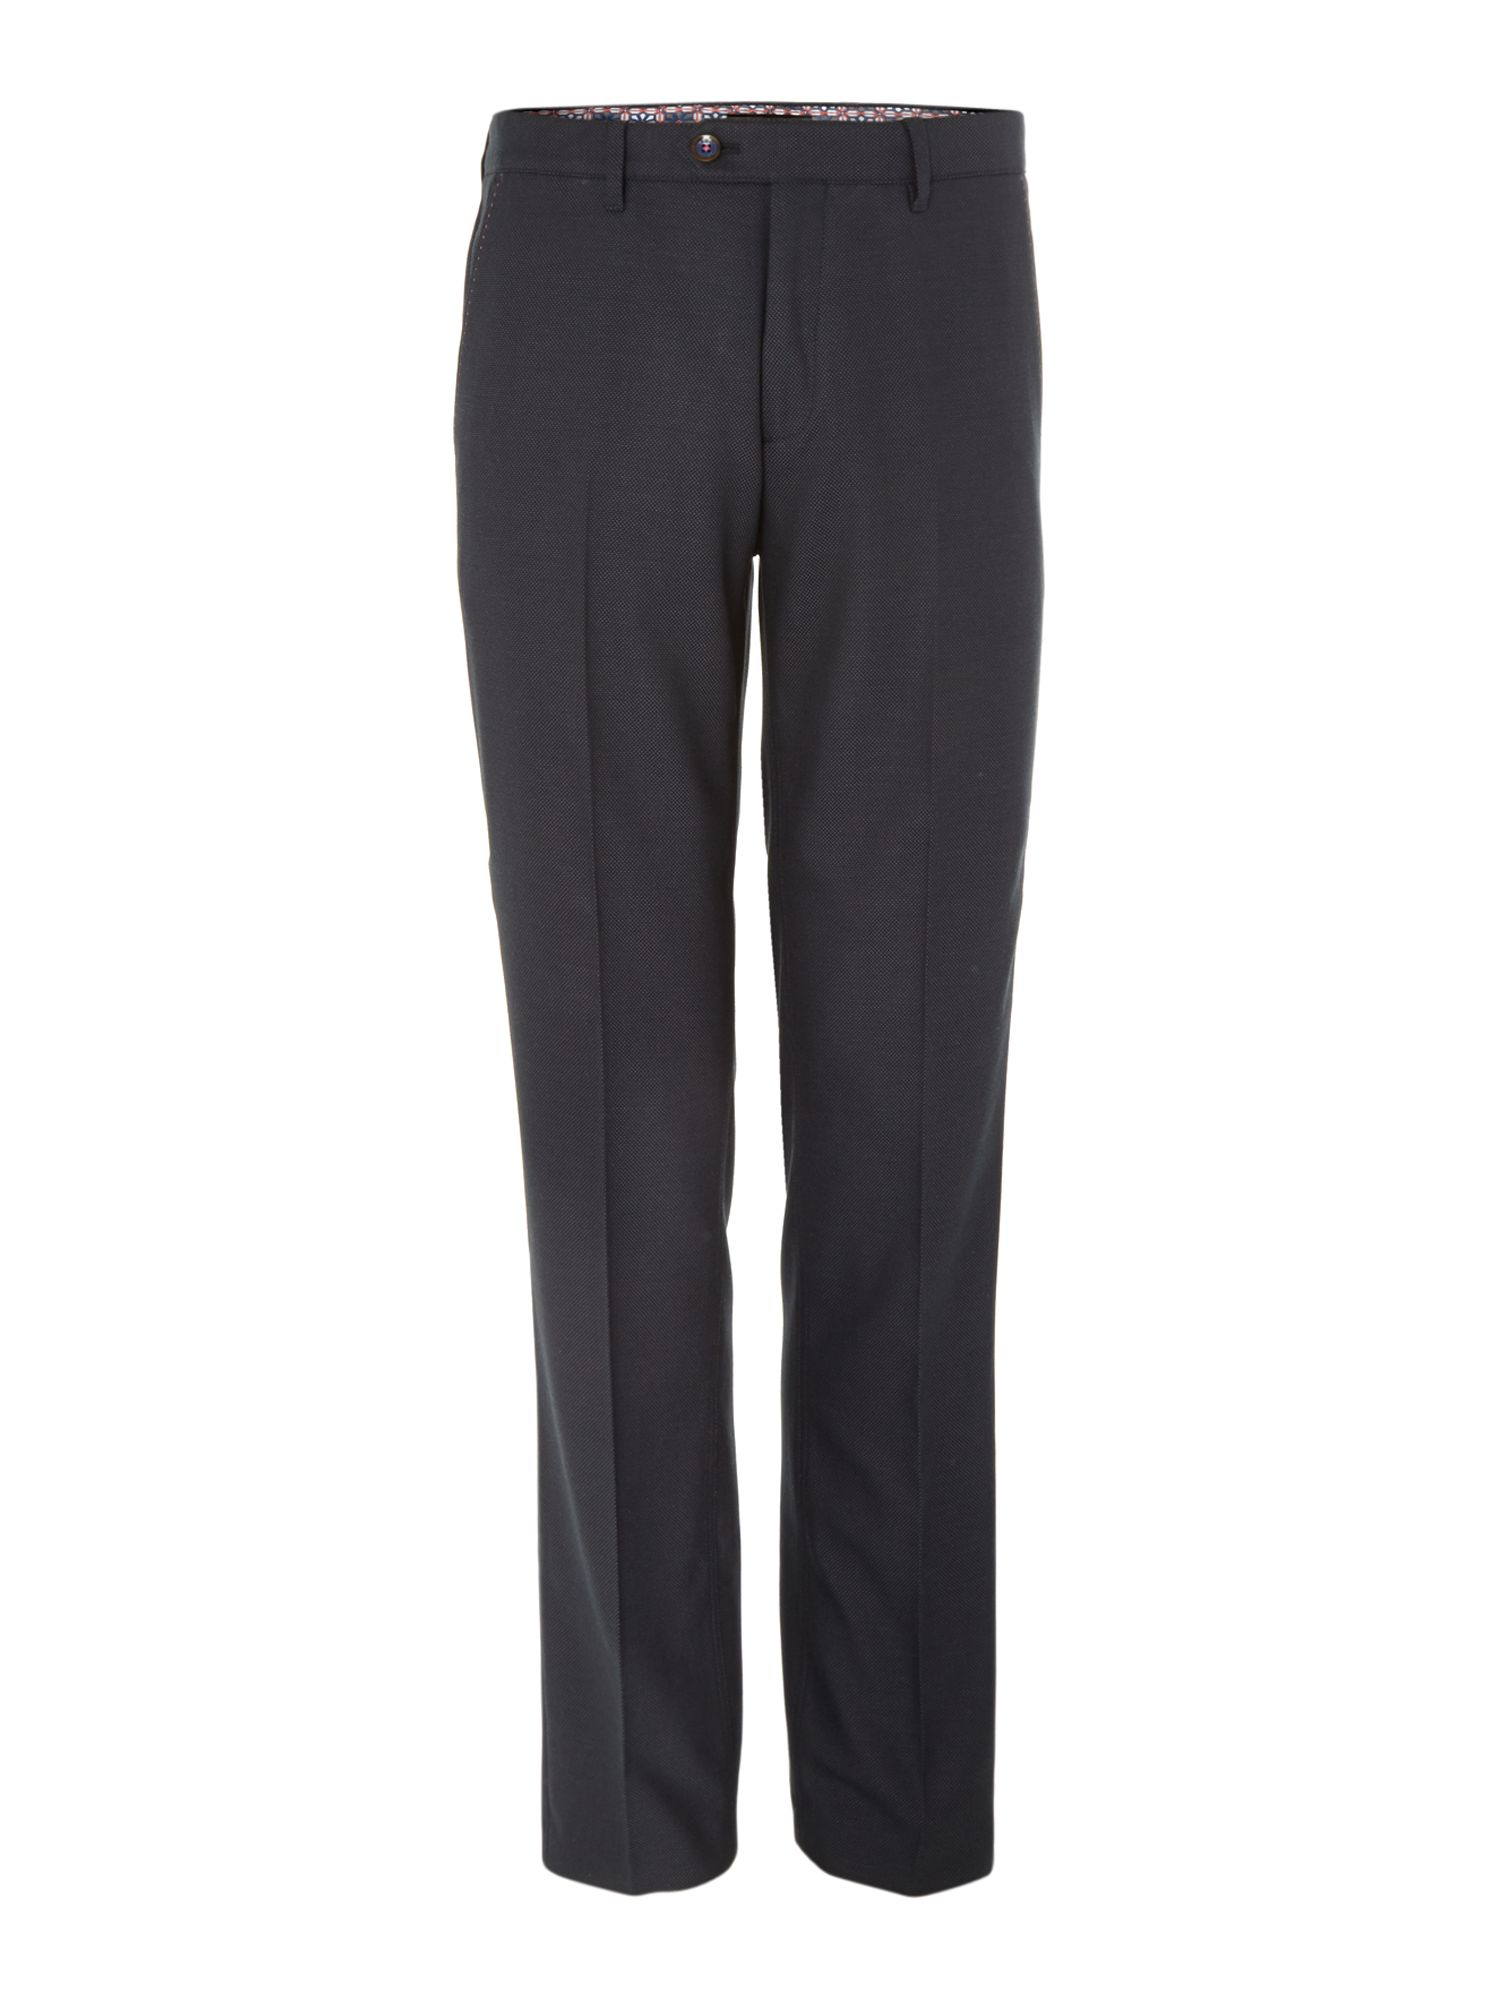 Elratro textured trousers